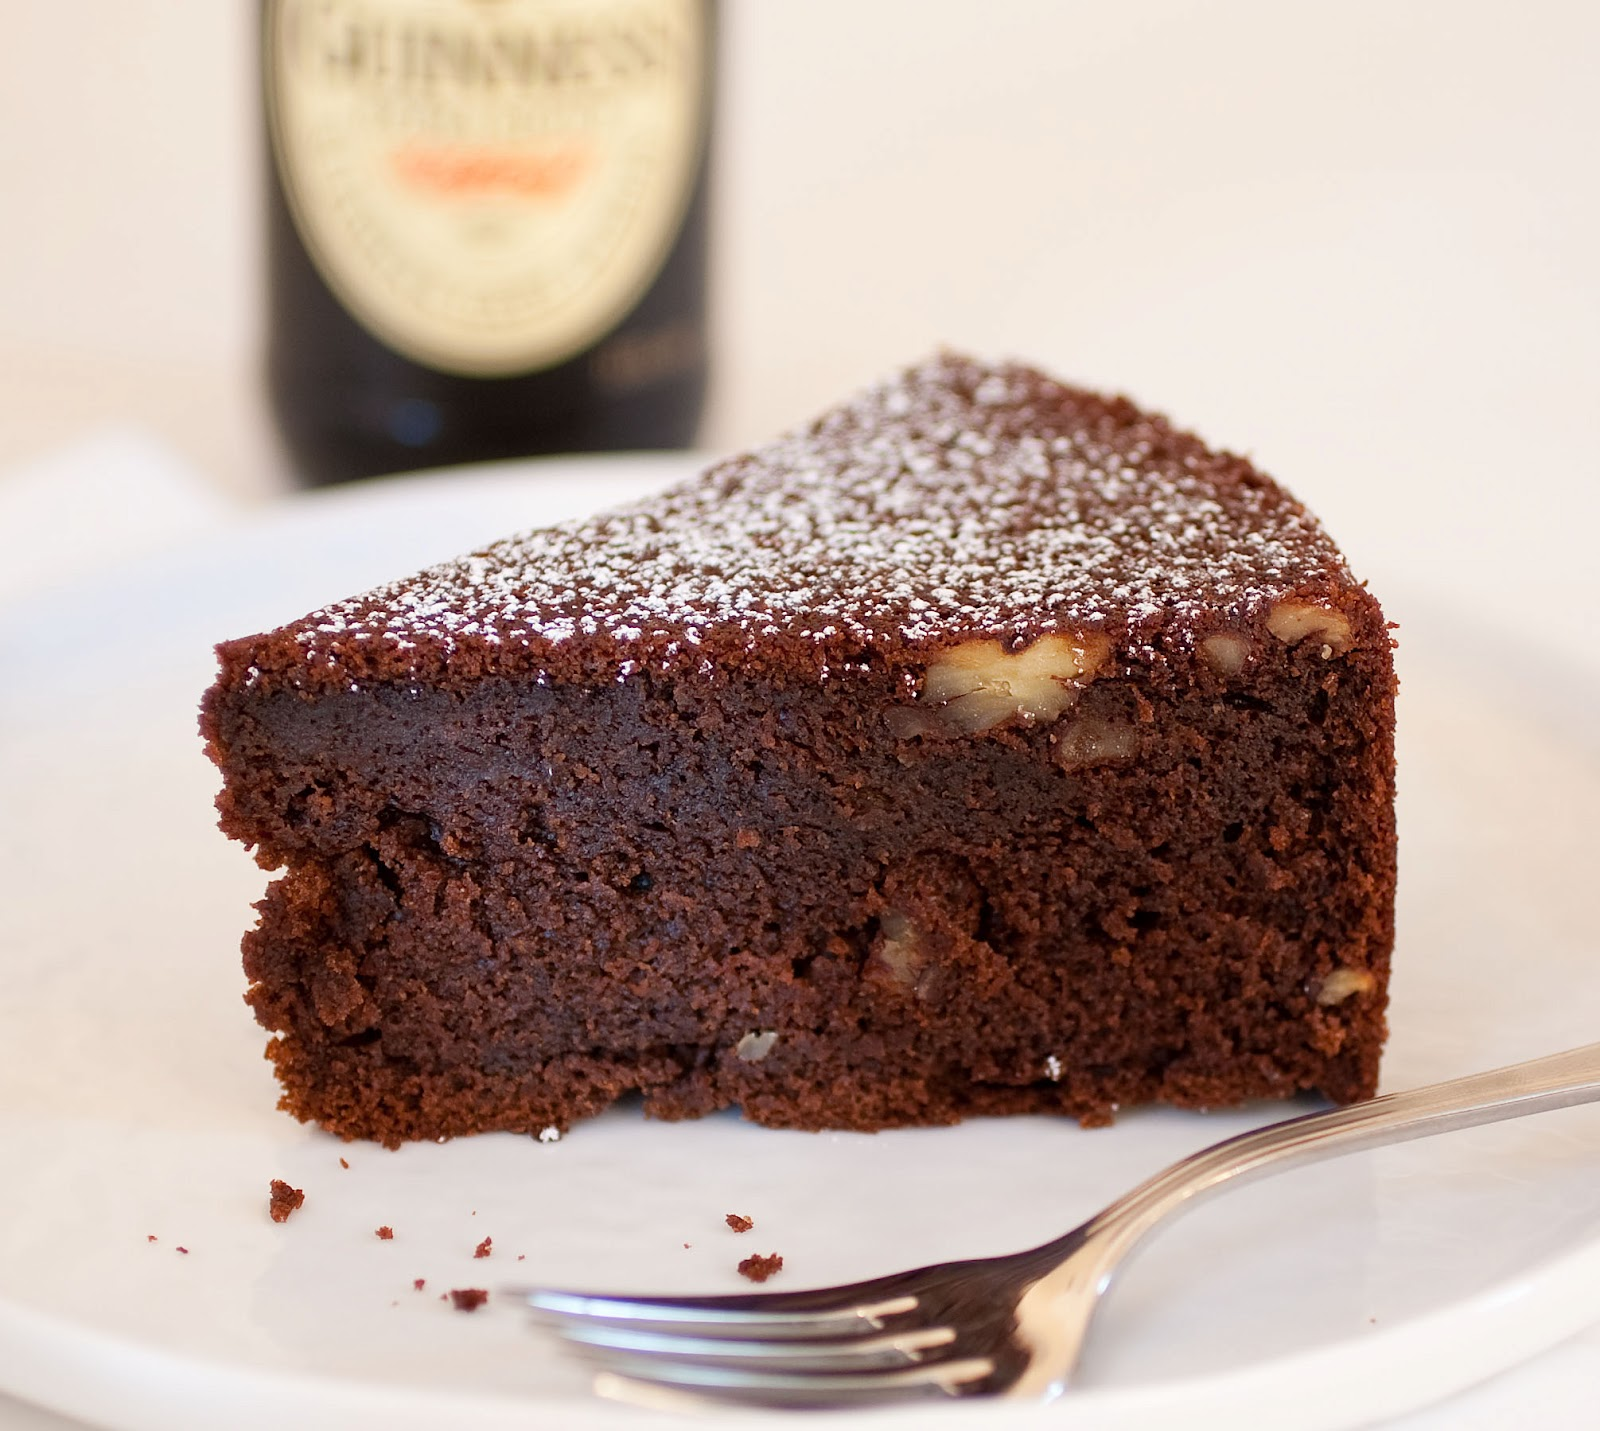 Tish Boyle Sweet Dreams: Chocolate Guinness Cake – St. Patrick's ...